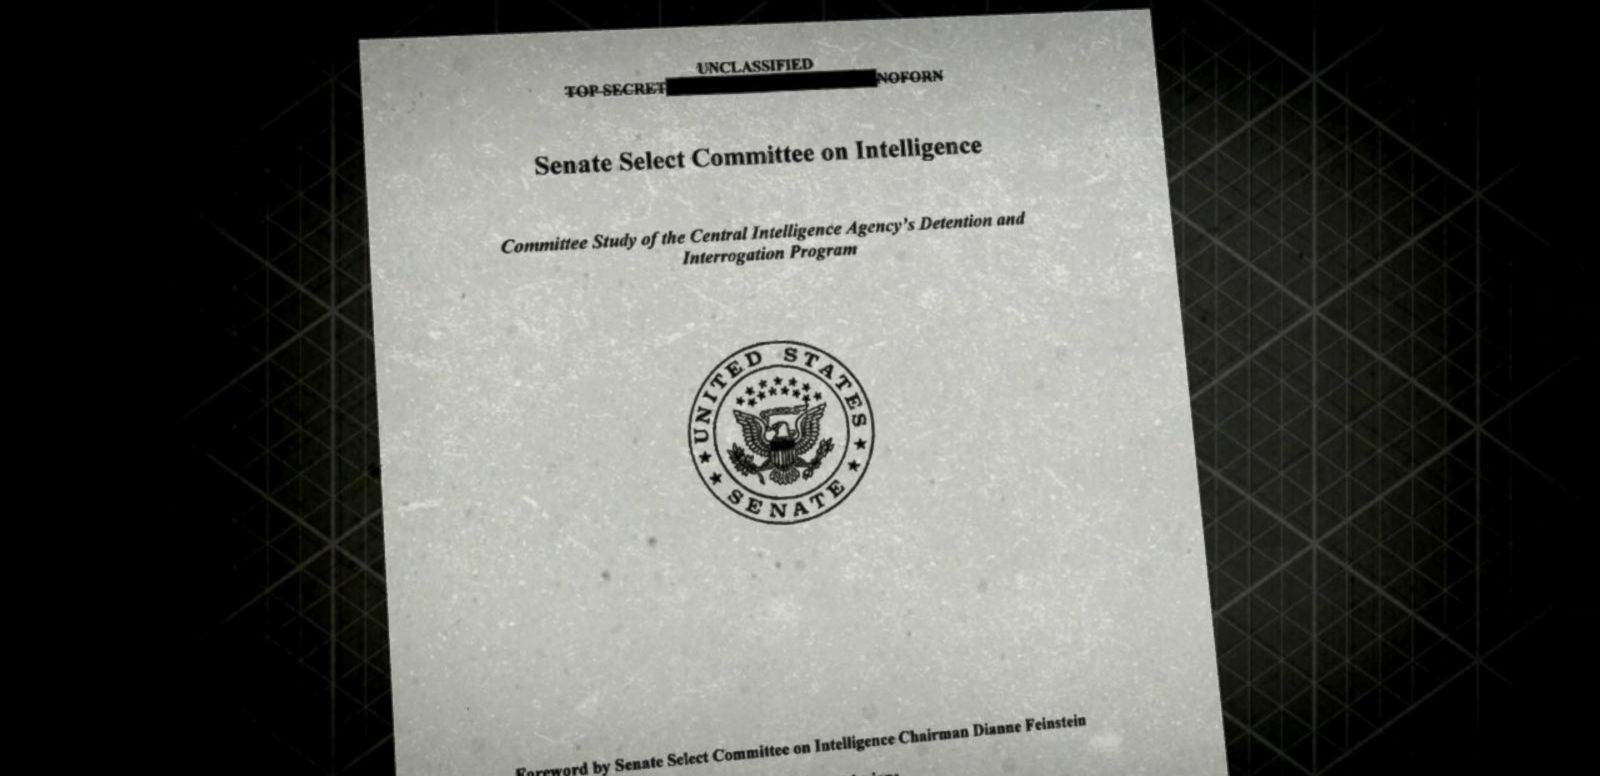 VIDEO: CIA Officials Claim the CIA Tactics Produced Intelligence That Saved Lives